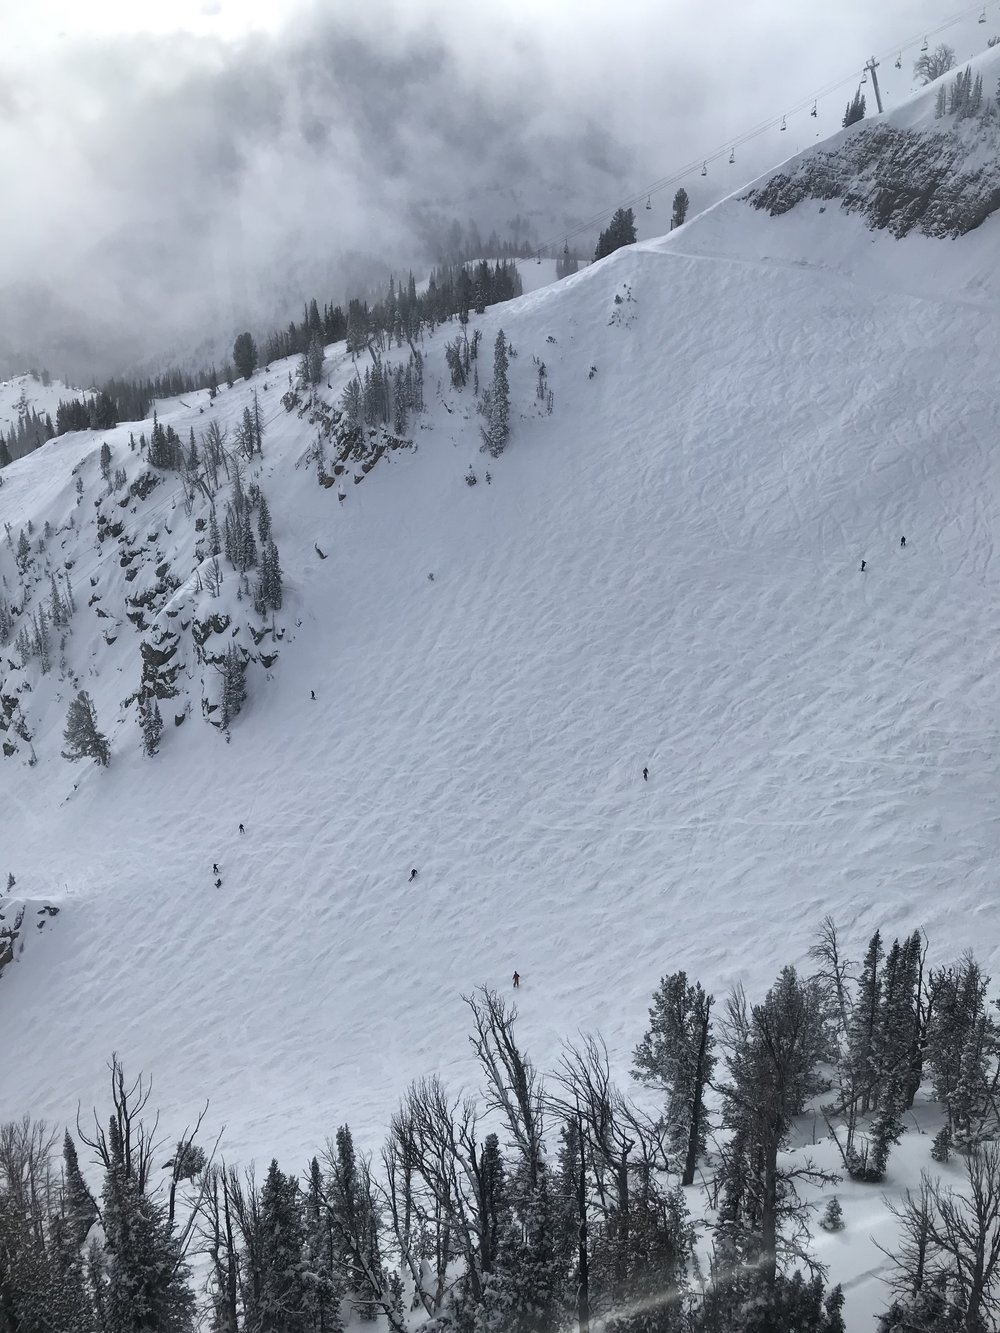 Not exactly what I was facing, but this is what it felt like. Jackson Hole, Wyoming.